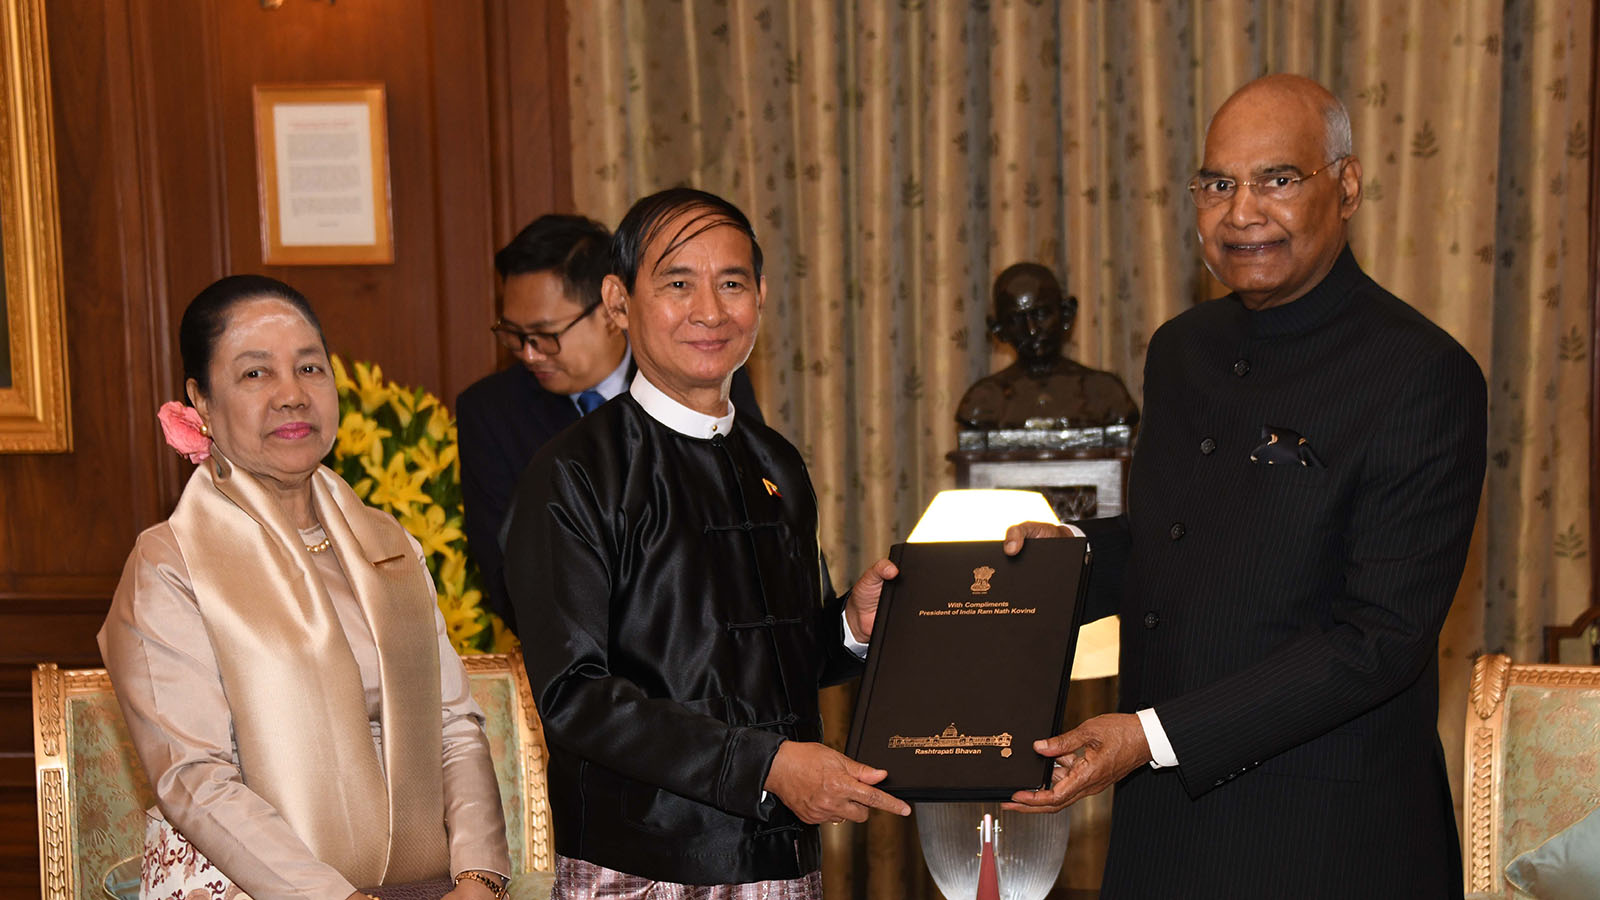 President U Win Myint accepts a souvenir from Indian President Shri Ram Nath Kovind in India on 27 February.  Photo: MNA